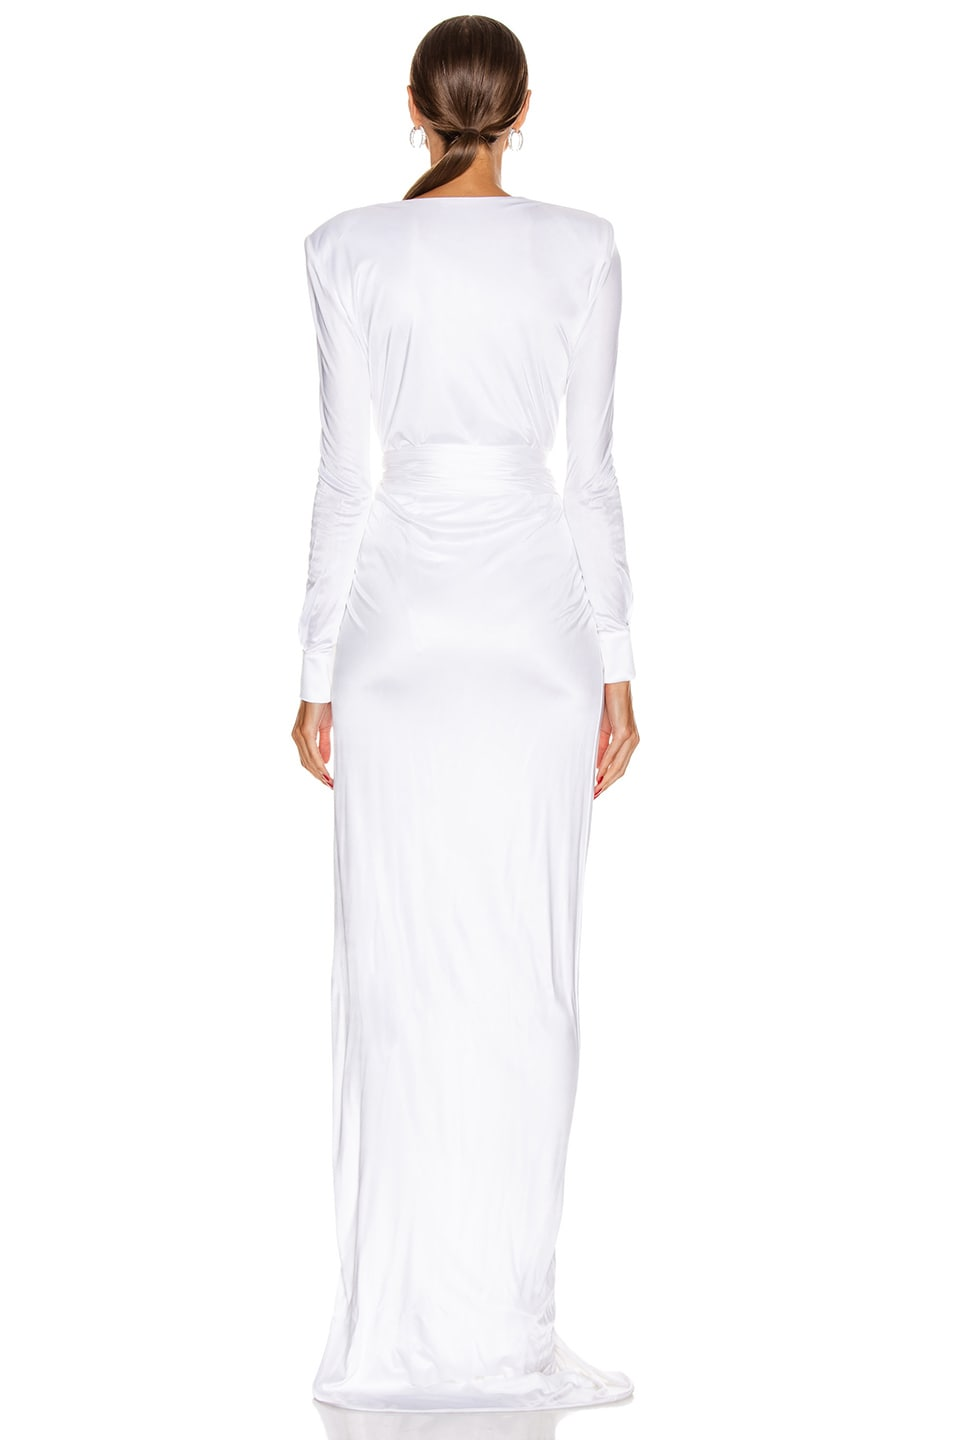 Image 4 of Redemption Draped Long Dress in White